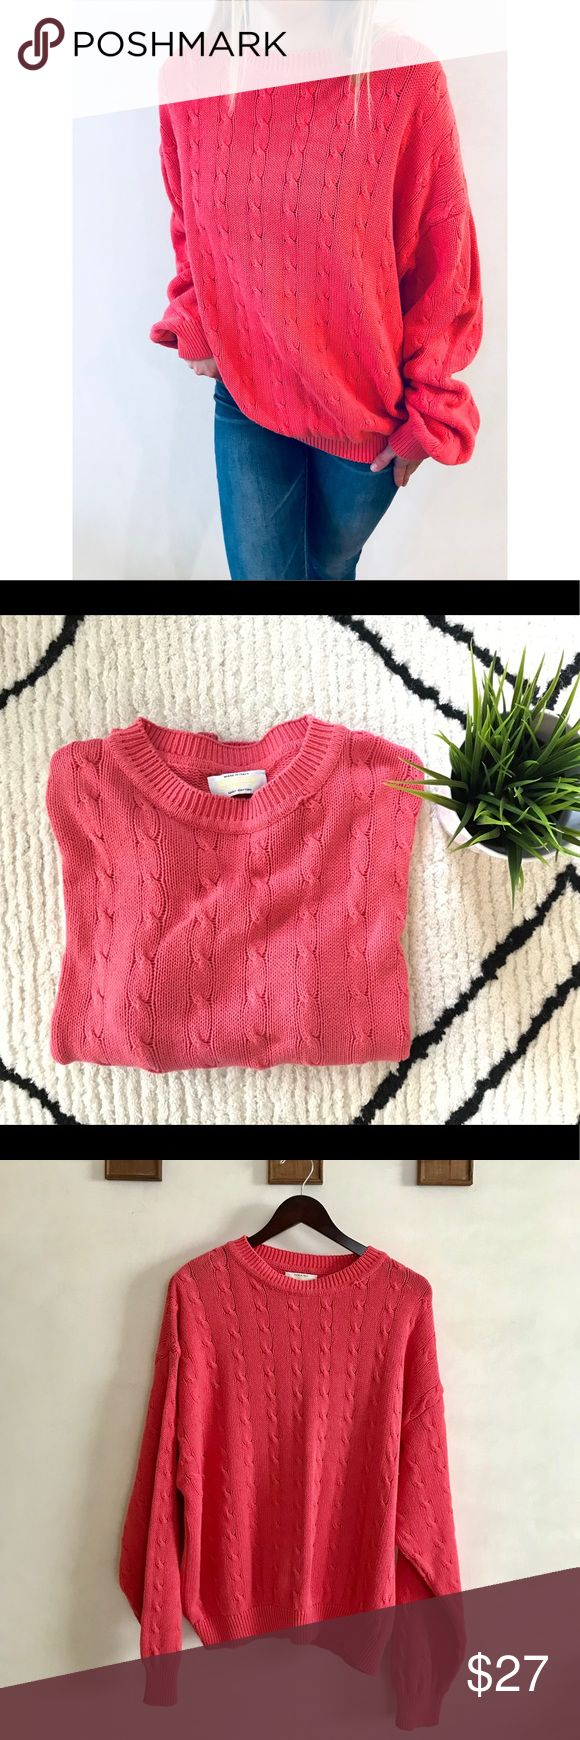 "United Colors of Benetton Cable Knit Sweater Beautiful coral colored 'United Colors of Benetton"" cable knit sweater in a size large.  I am usually a small so it is big on me, but super cute as an oversized sweater!  Small snag on the left neckline (shown in last photo). Good condition. Super comfy! 100% Cotton Bottom Hem: 20 in Shoulder to Hem: 26 in Sleeve Length: 22 in  ✨I love ALL offers! Don't be shy! ✨ United Colors Of Benetton Sweaters Shrugs & Ponchos"